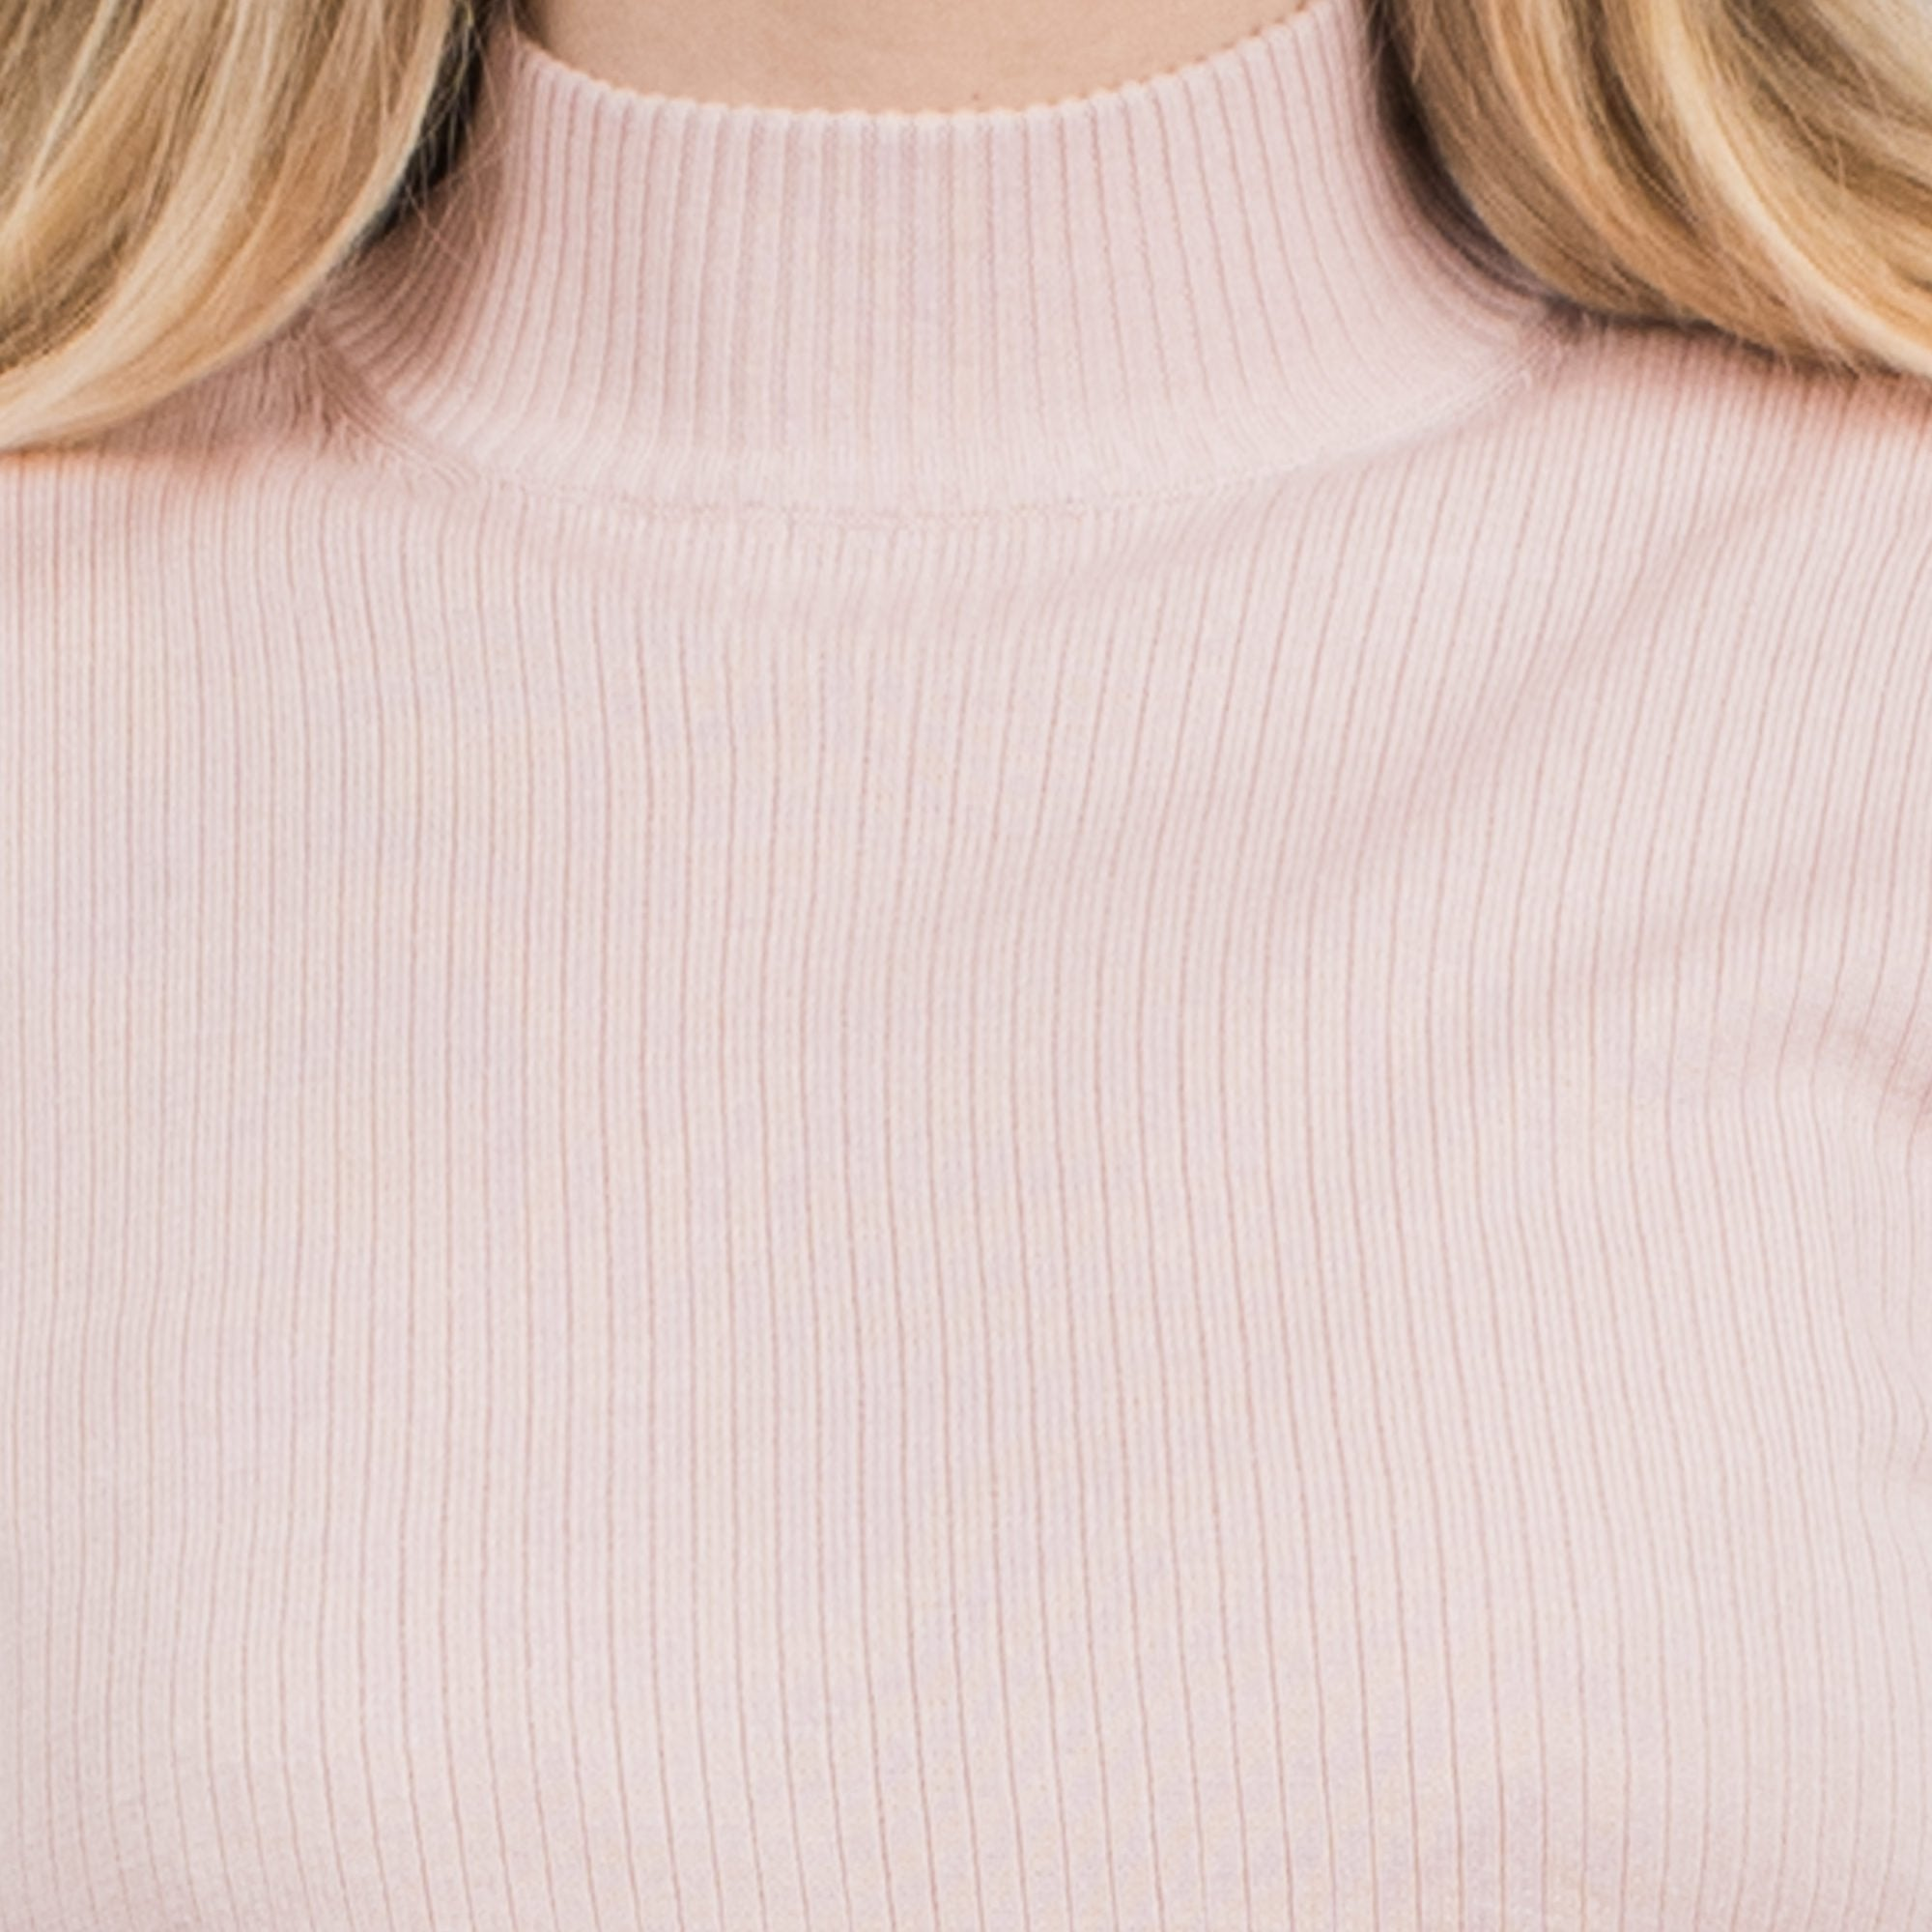 Vintage Cropped Light Pink Ribbed Silk Knit Top / S - Closed Caption